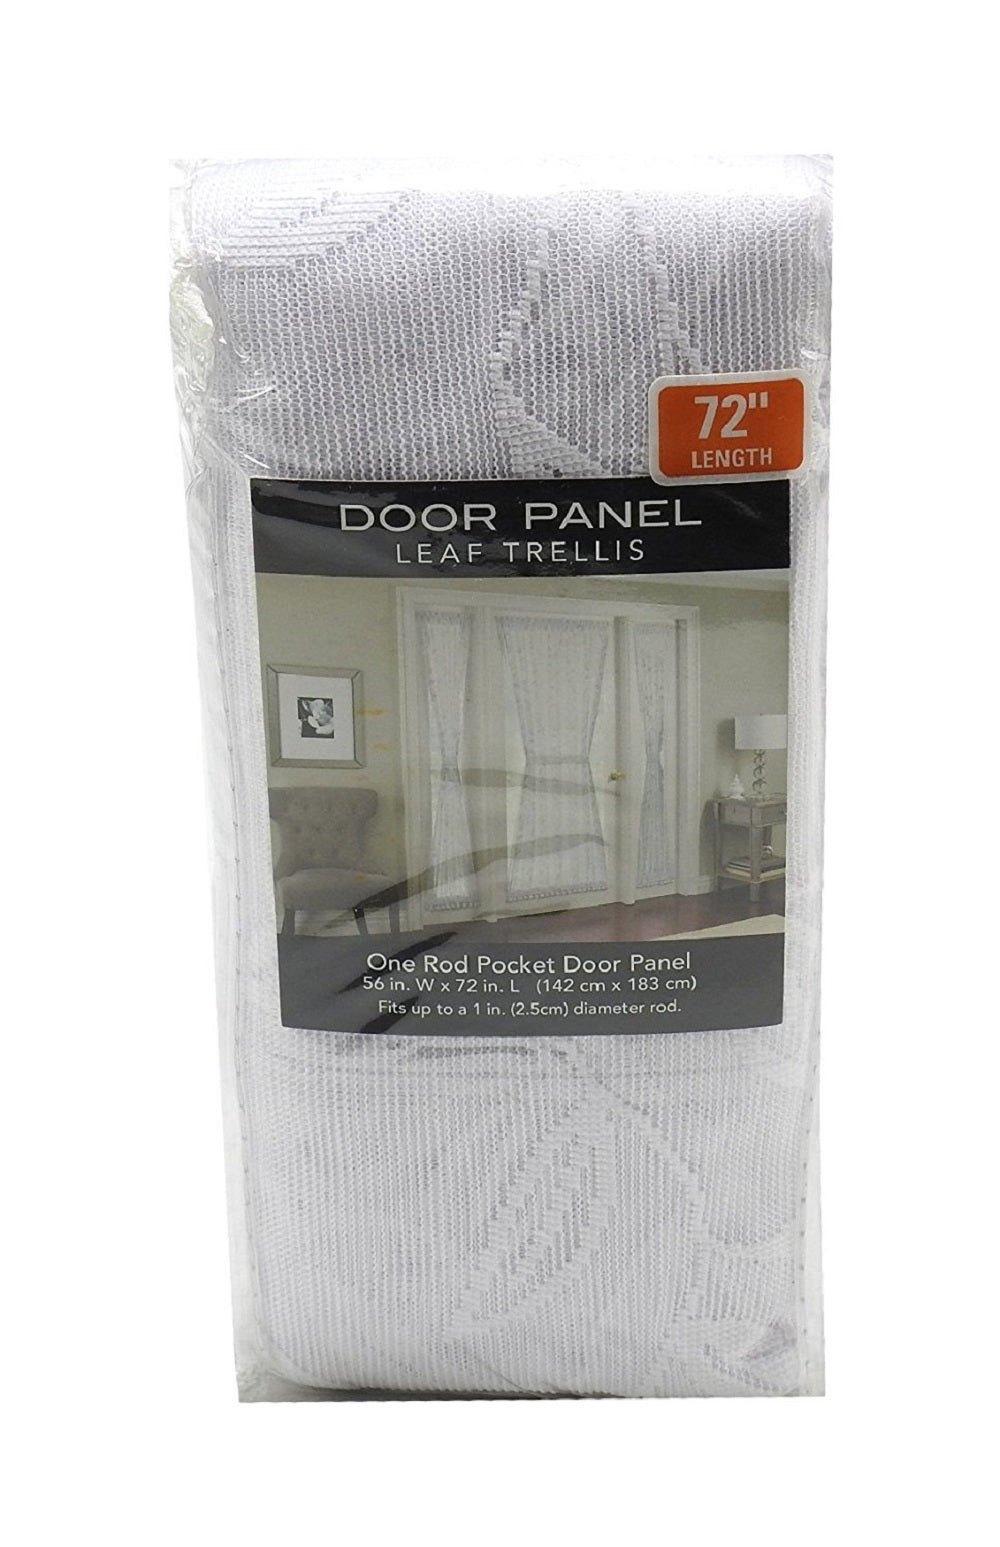 Leaf Trellis One Rod Pocket (56 in.W x 72 in.L) Door Panel, White